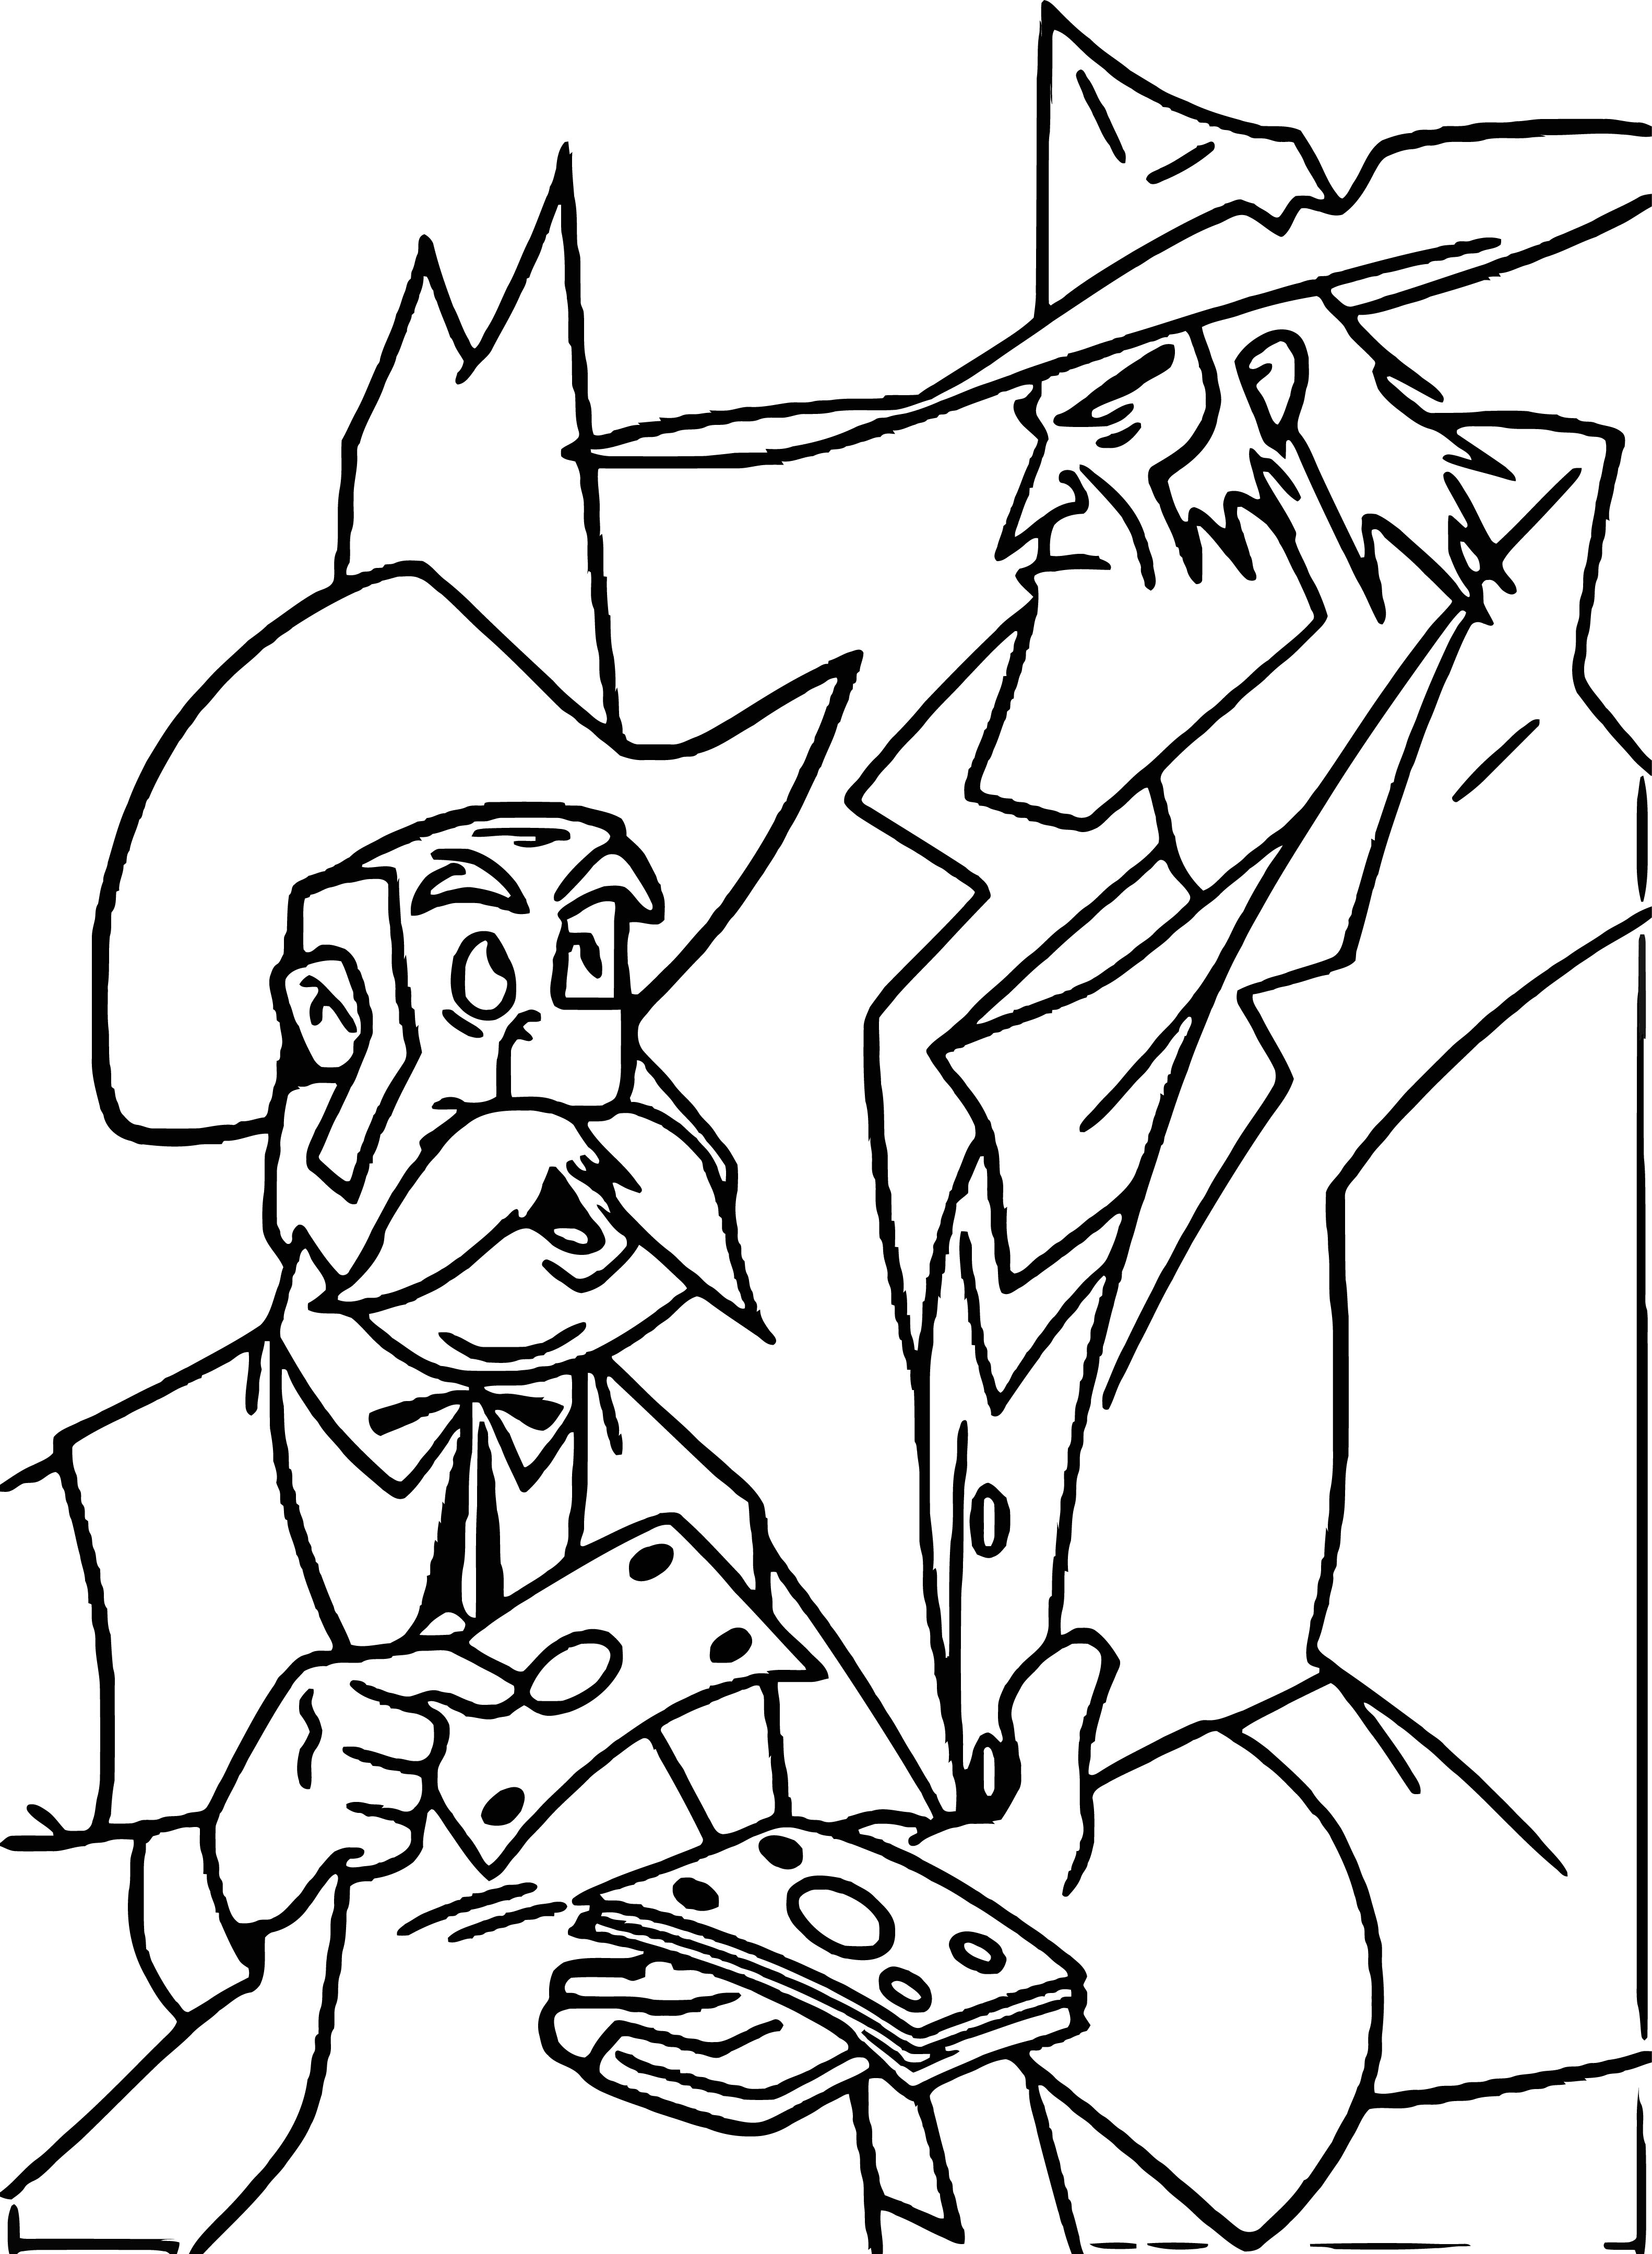 Home On The Range Give Money Man Coloring Page